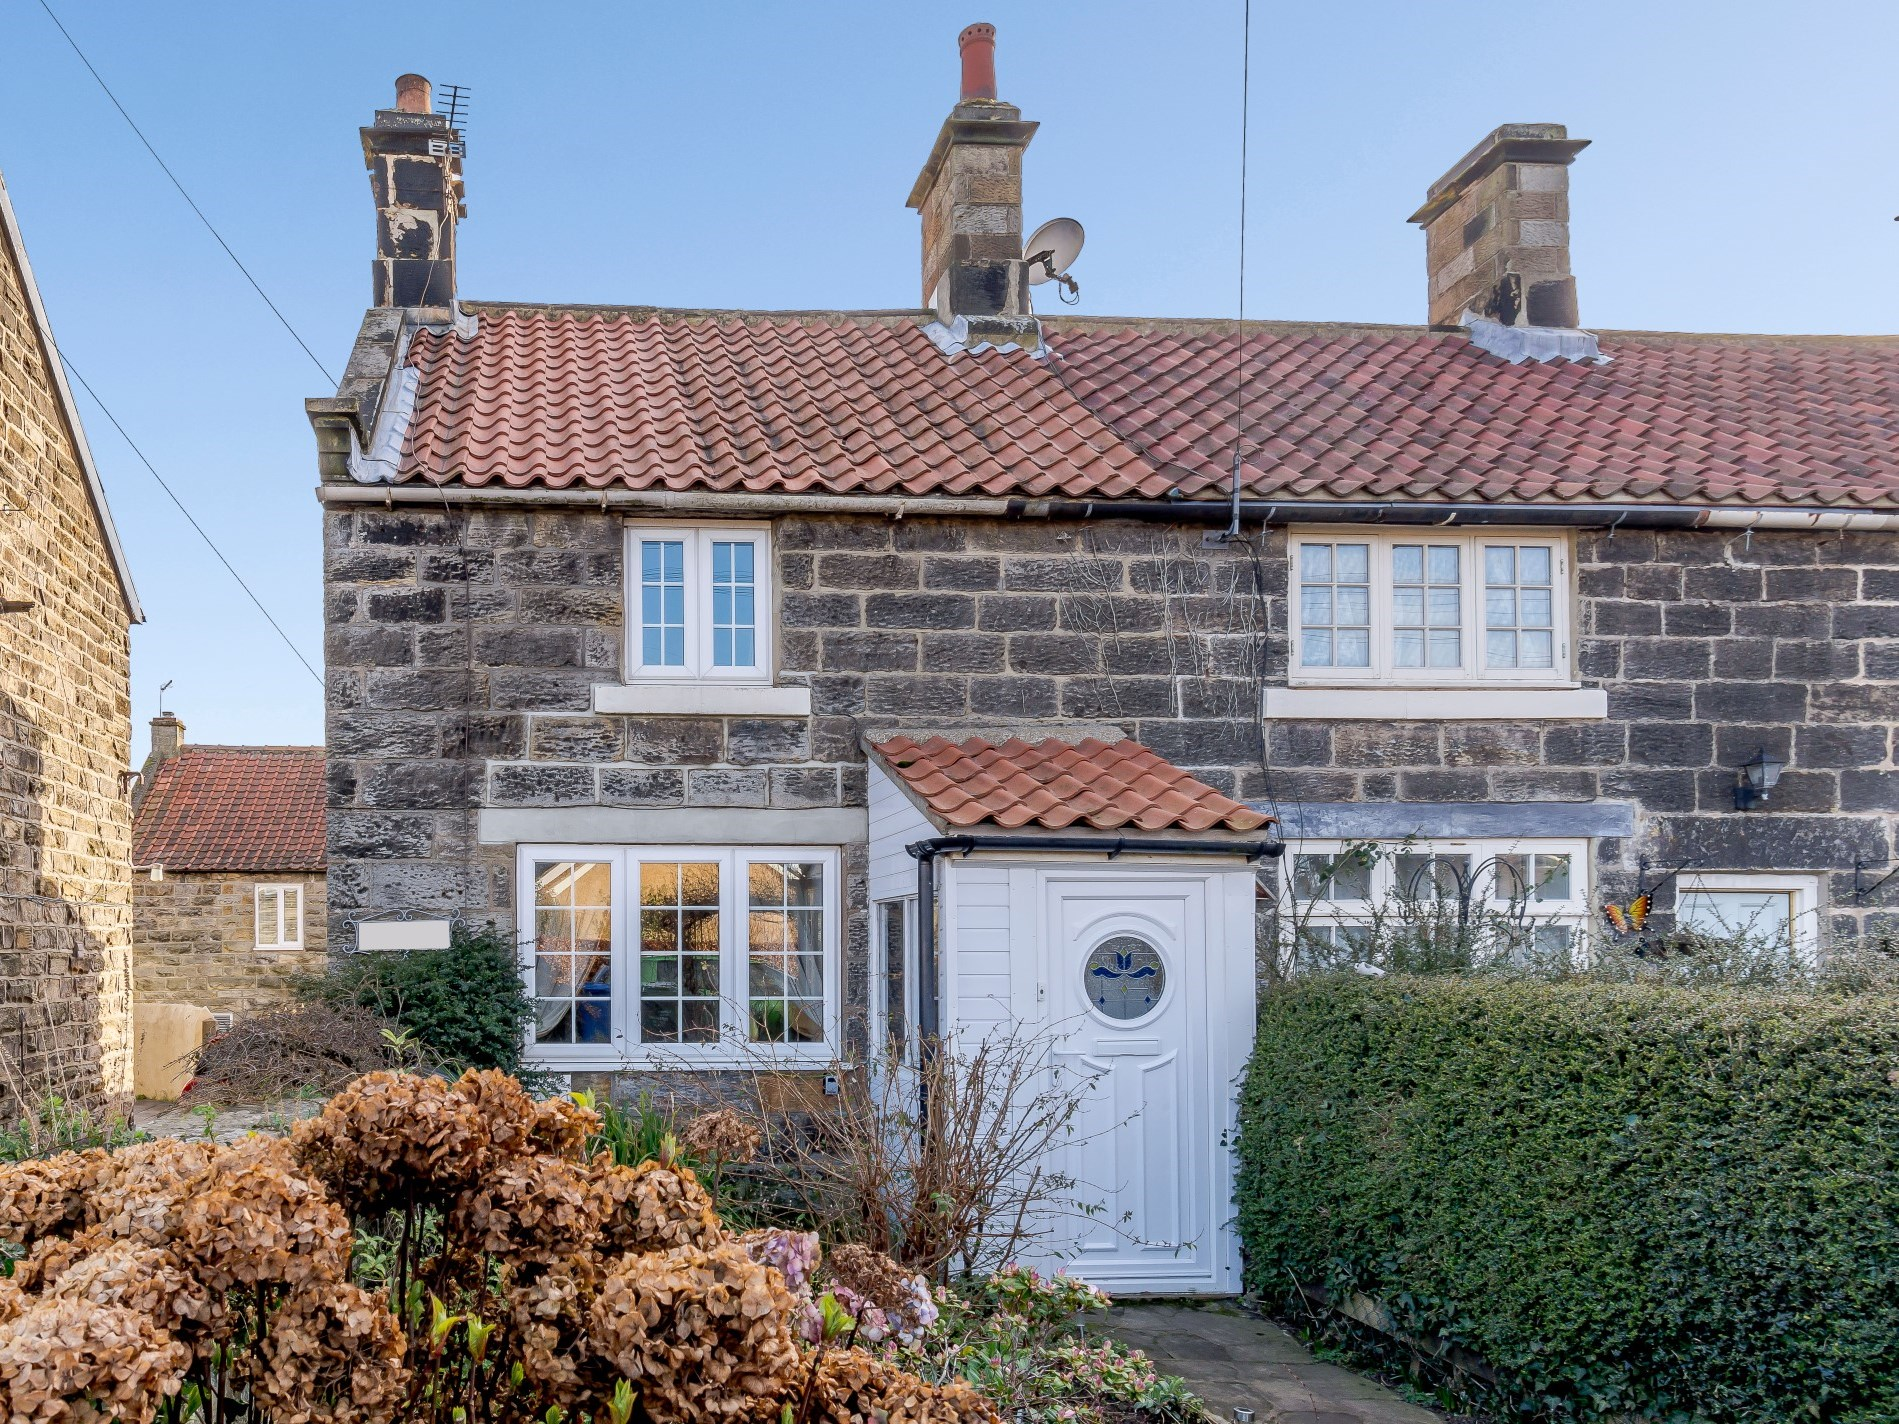 1 Bedroom Cottage in Whitby, Yorkshire Dales